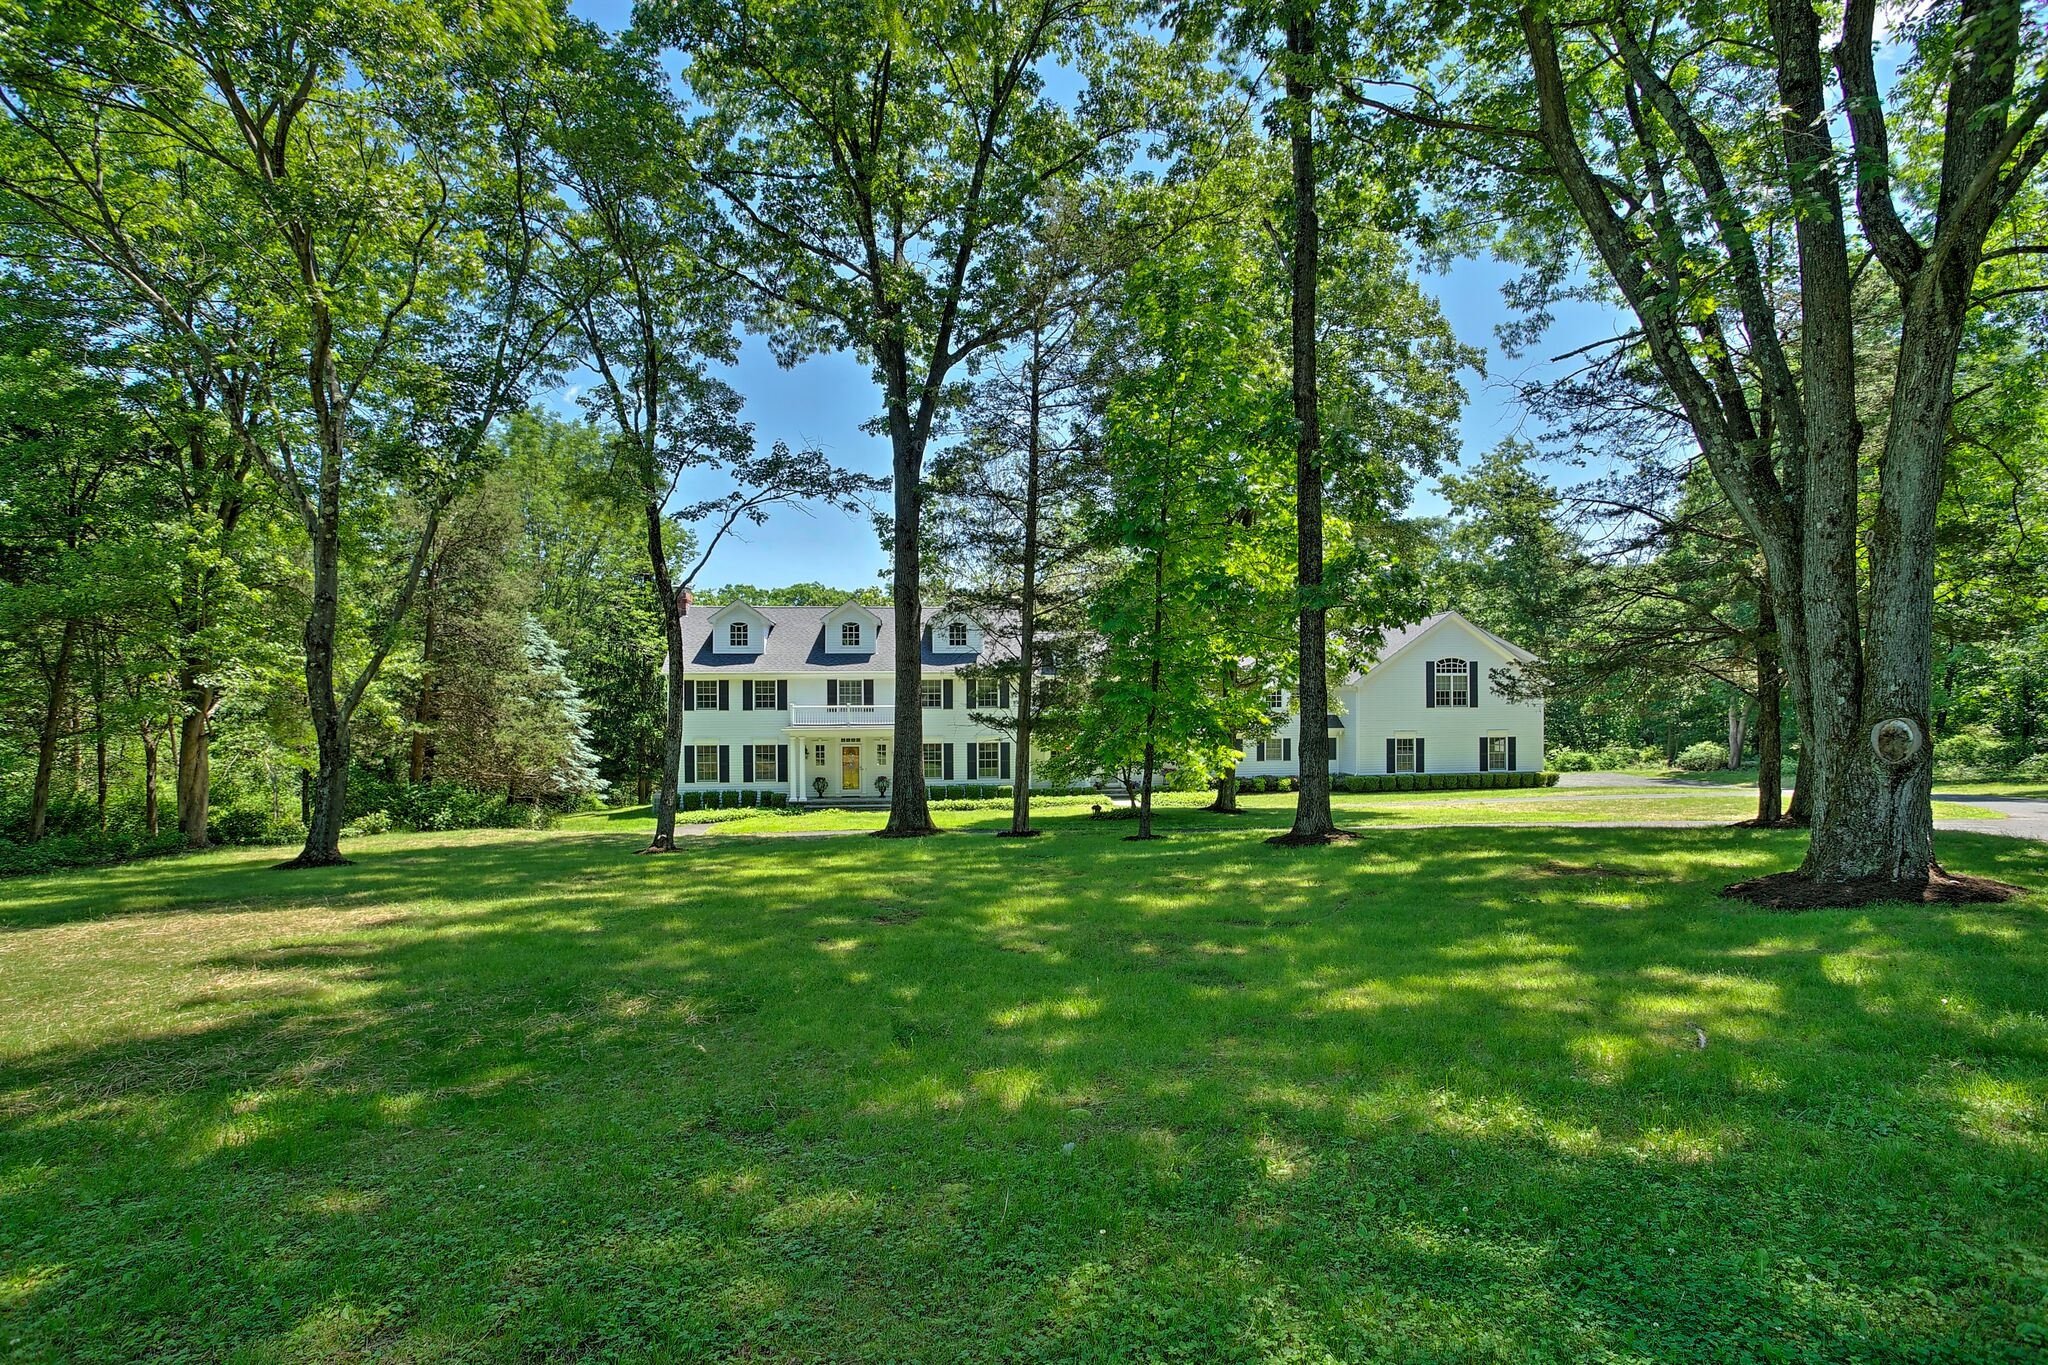 Mendham <br>Offered at $1,300,000